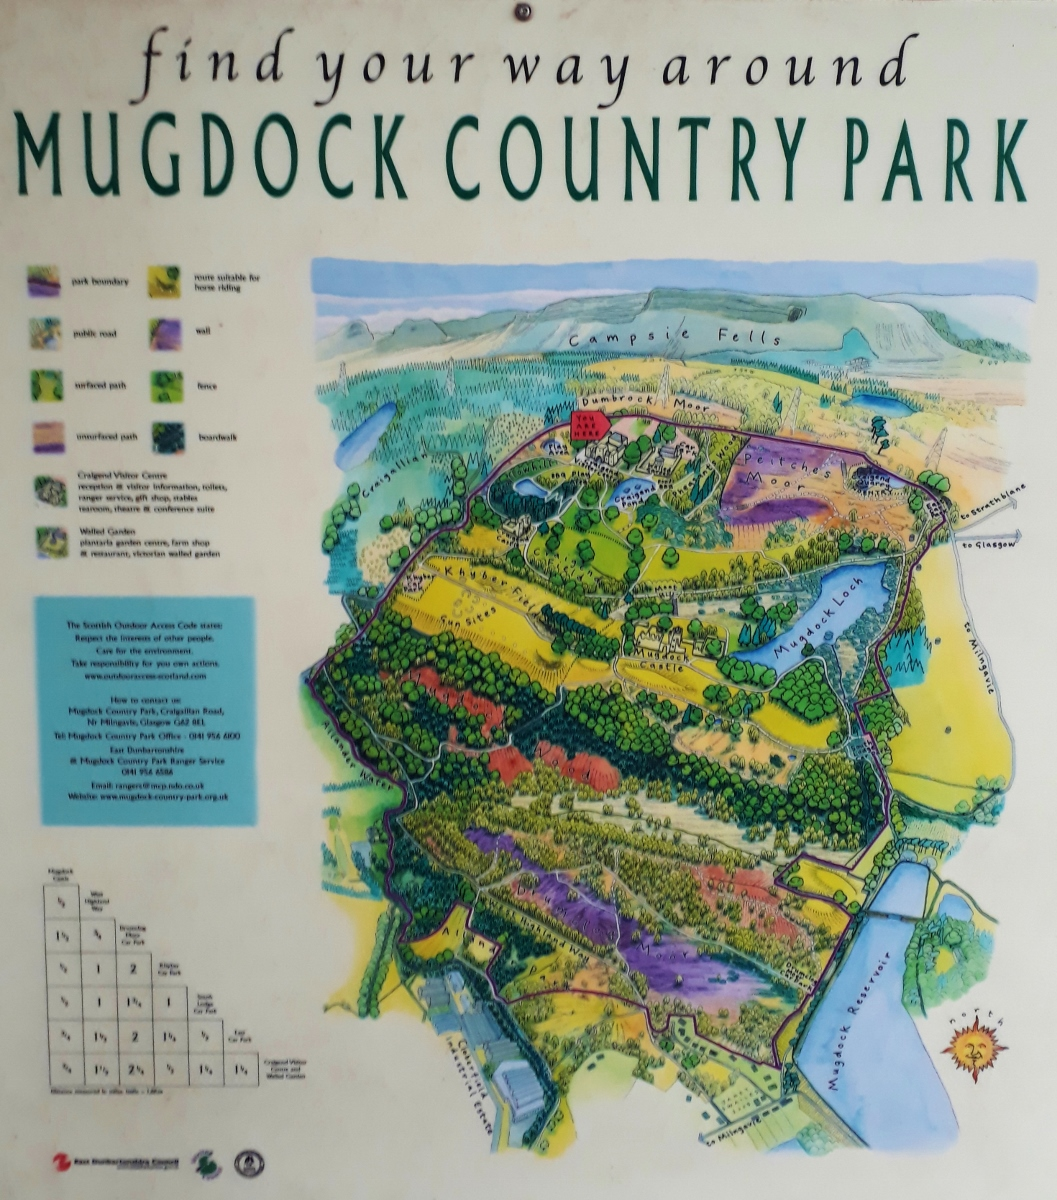 Mugdock Country Park Map and Route